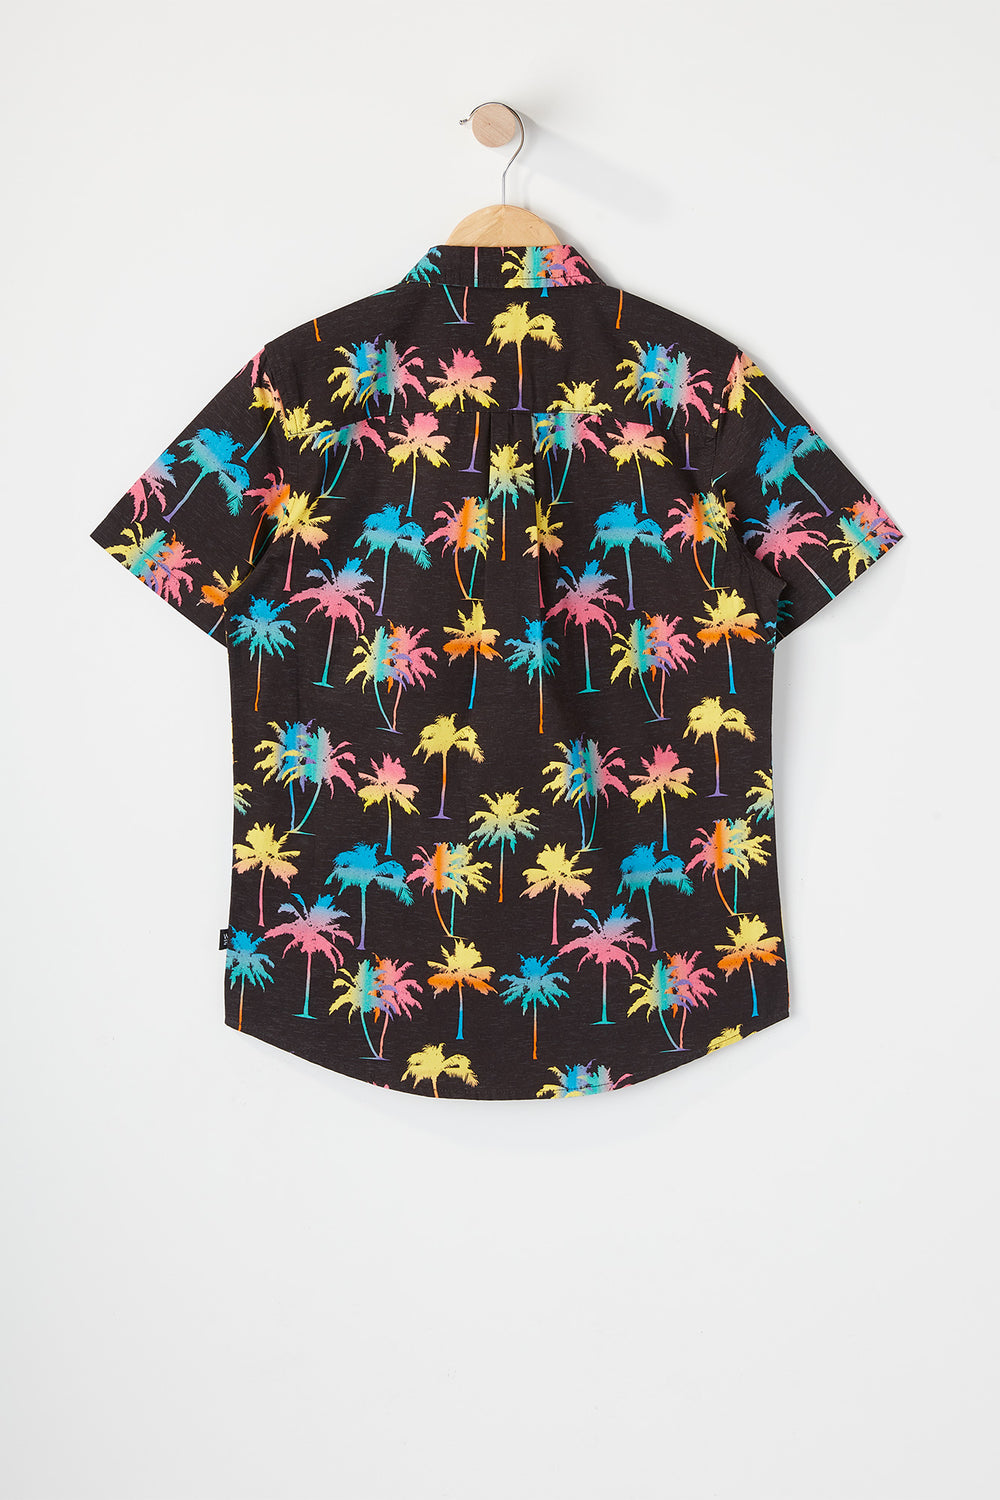 West49 Boys Neon Palm Tree Button-Up Shirt Black